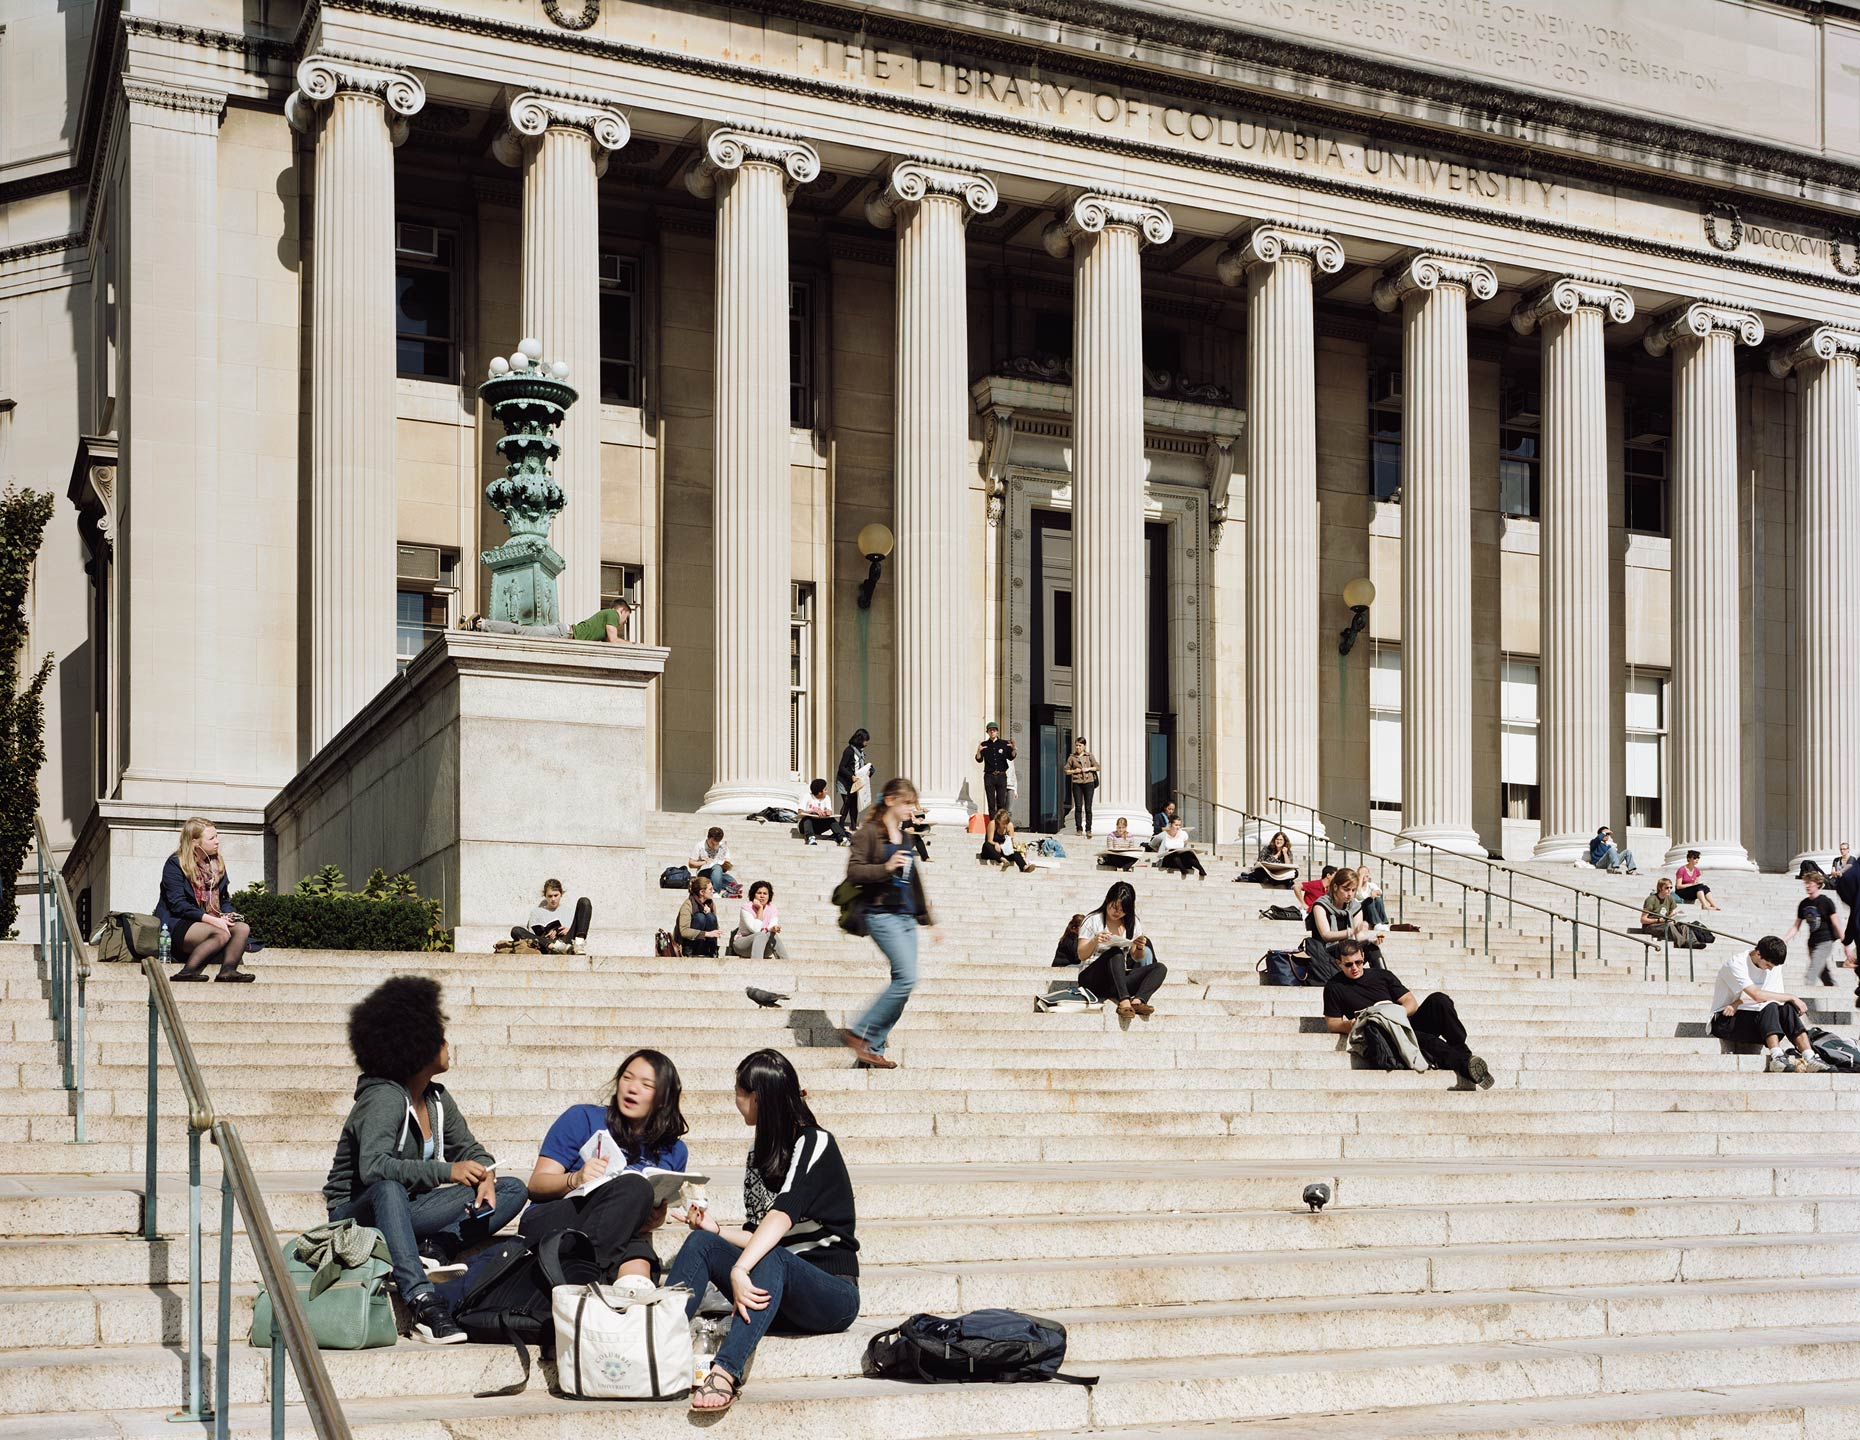 Low Memorial Library, Columbia University, New York City, NY, 2011